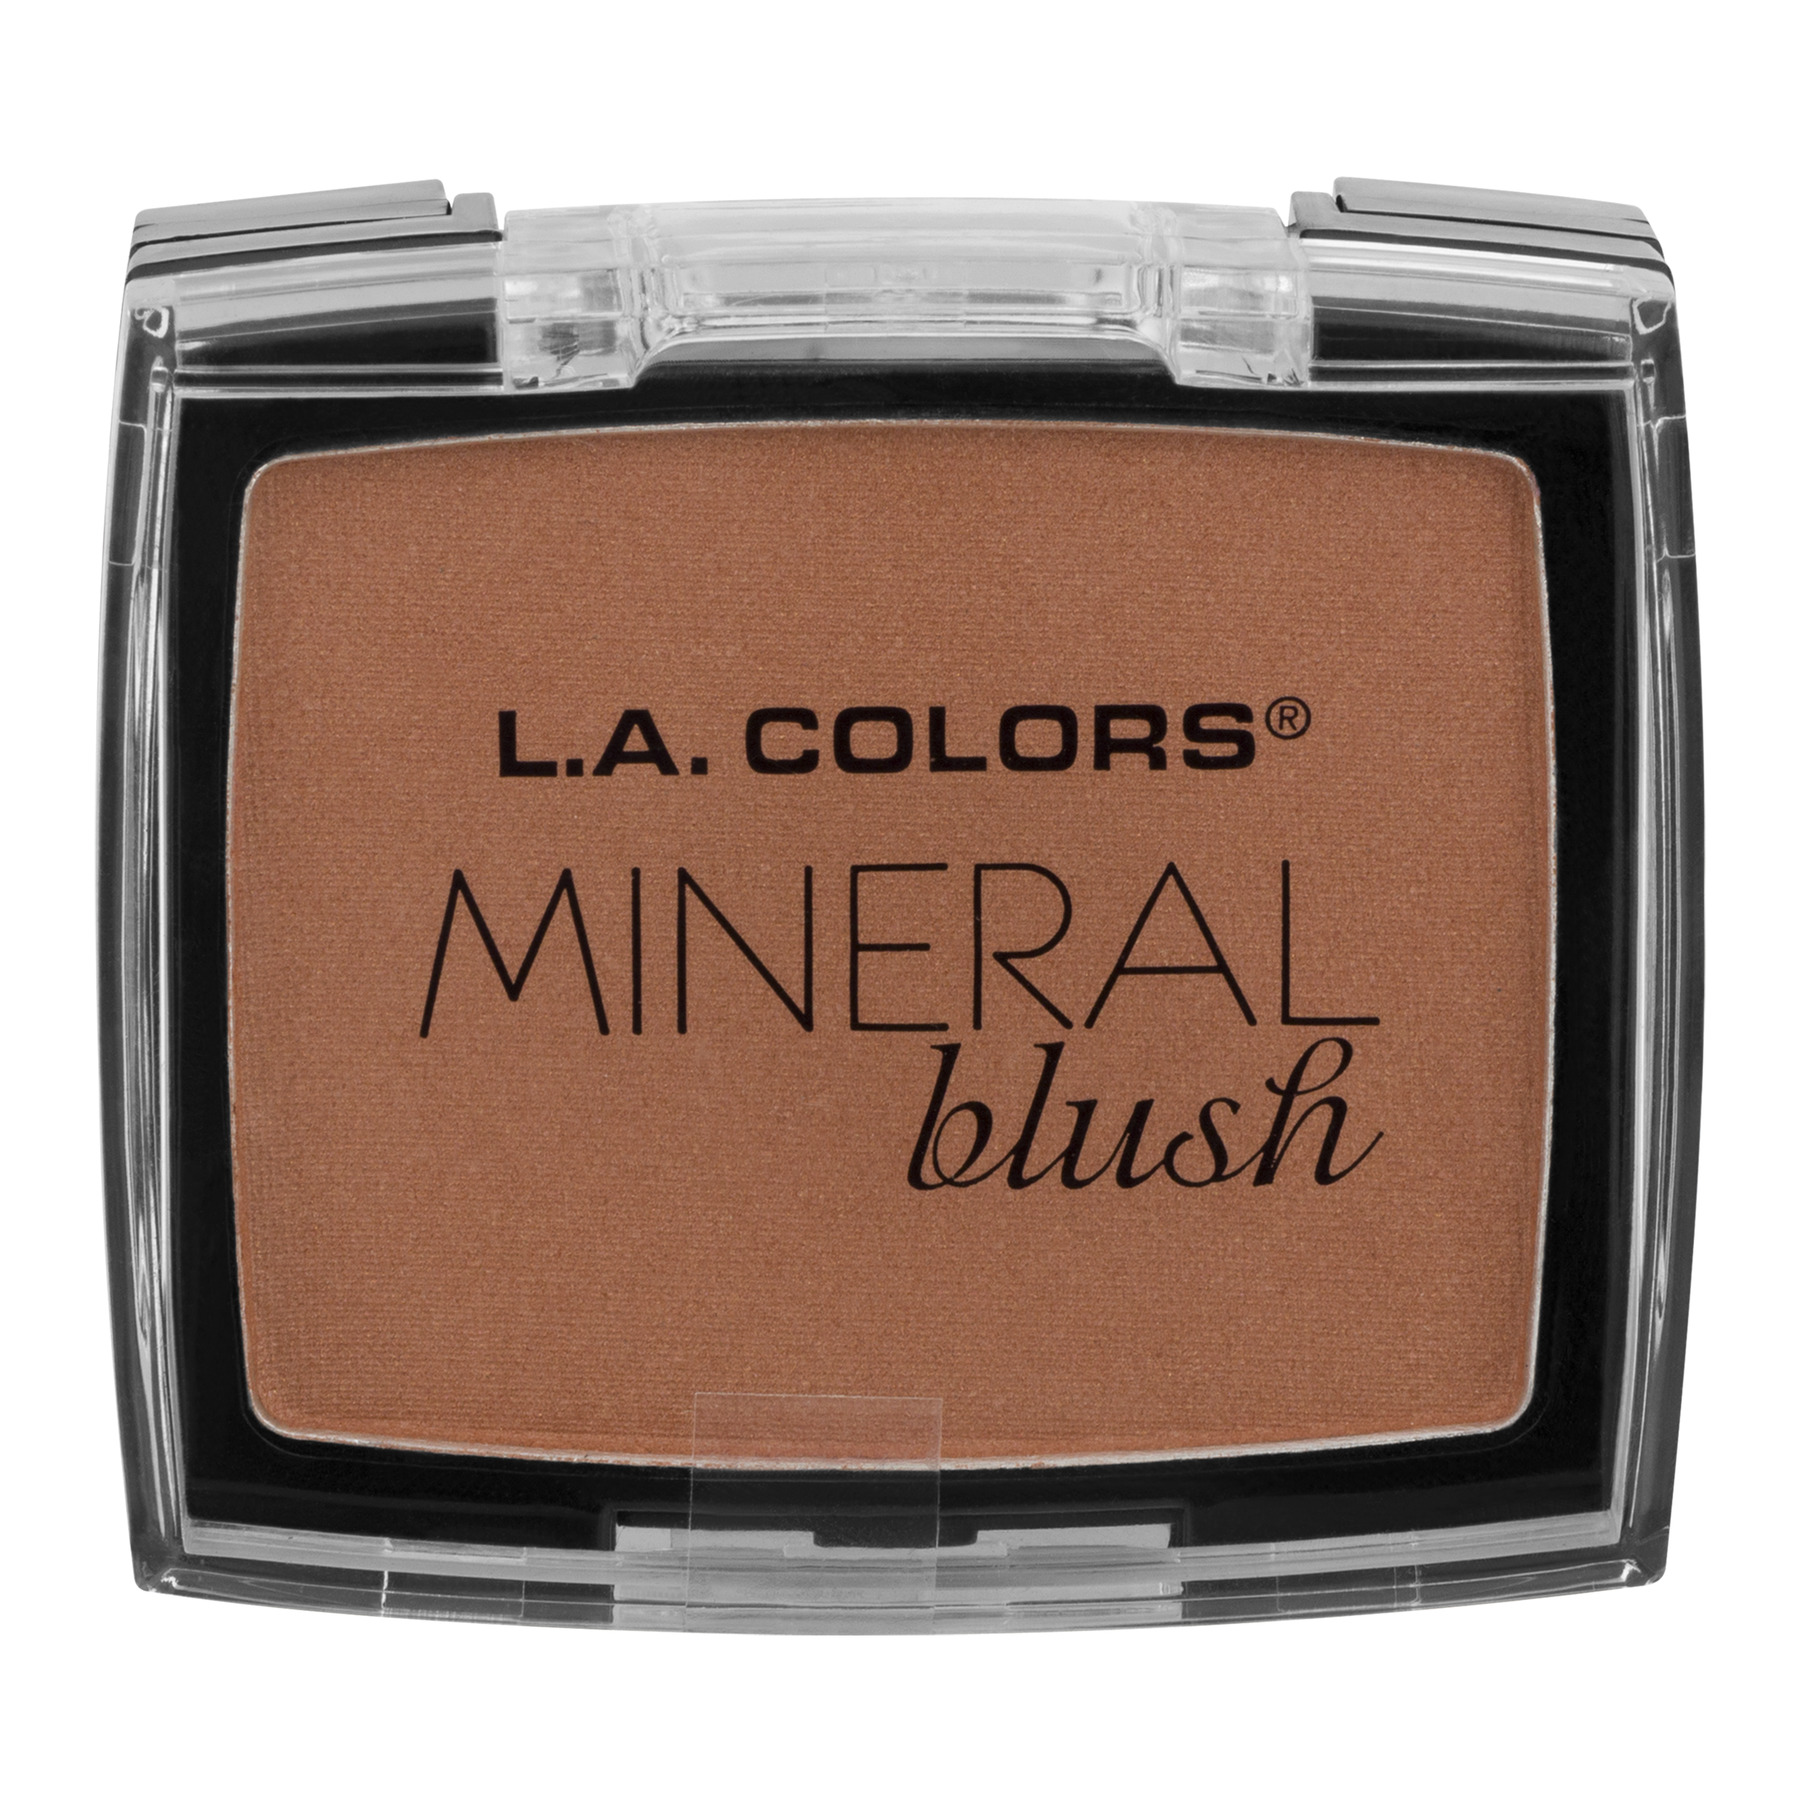 (2 Pack) L.A. Colors Mineral Blush, Sunkissed, 0.15 oz